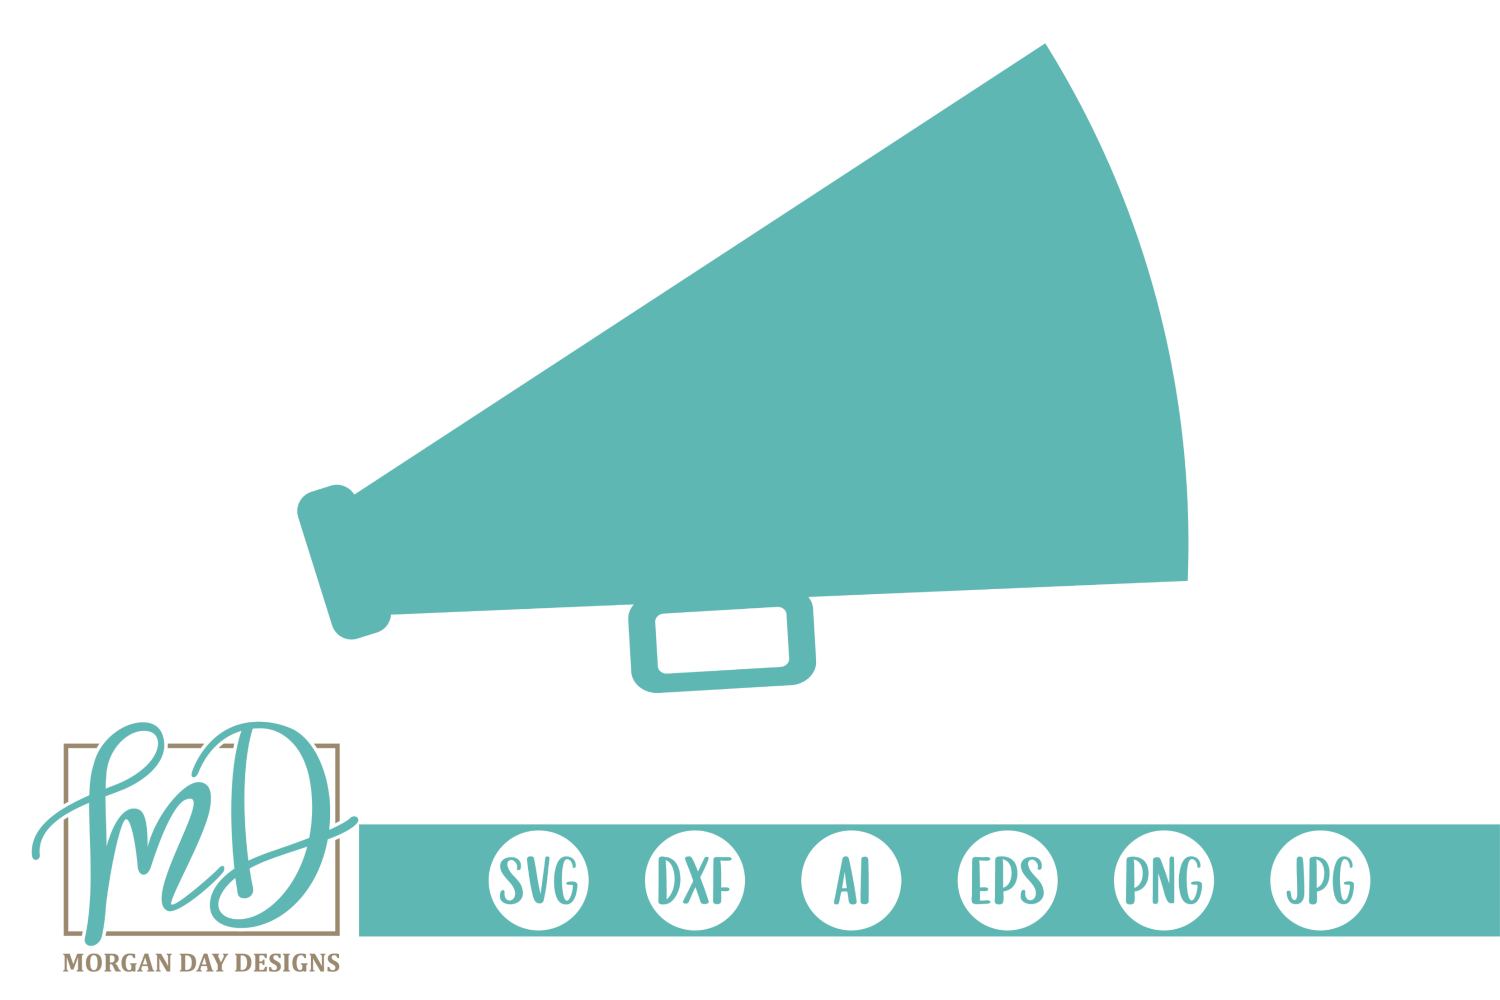 Download Free Megaphone Graphic By Morgan Day Designs Creative Fabrica for Cricut Explore, Silhouette and other cutting machines.